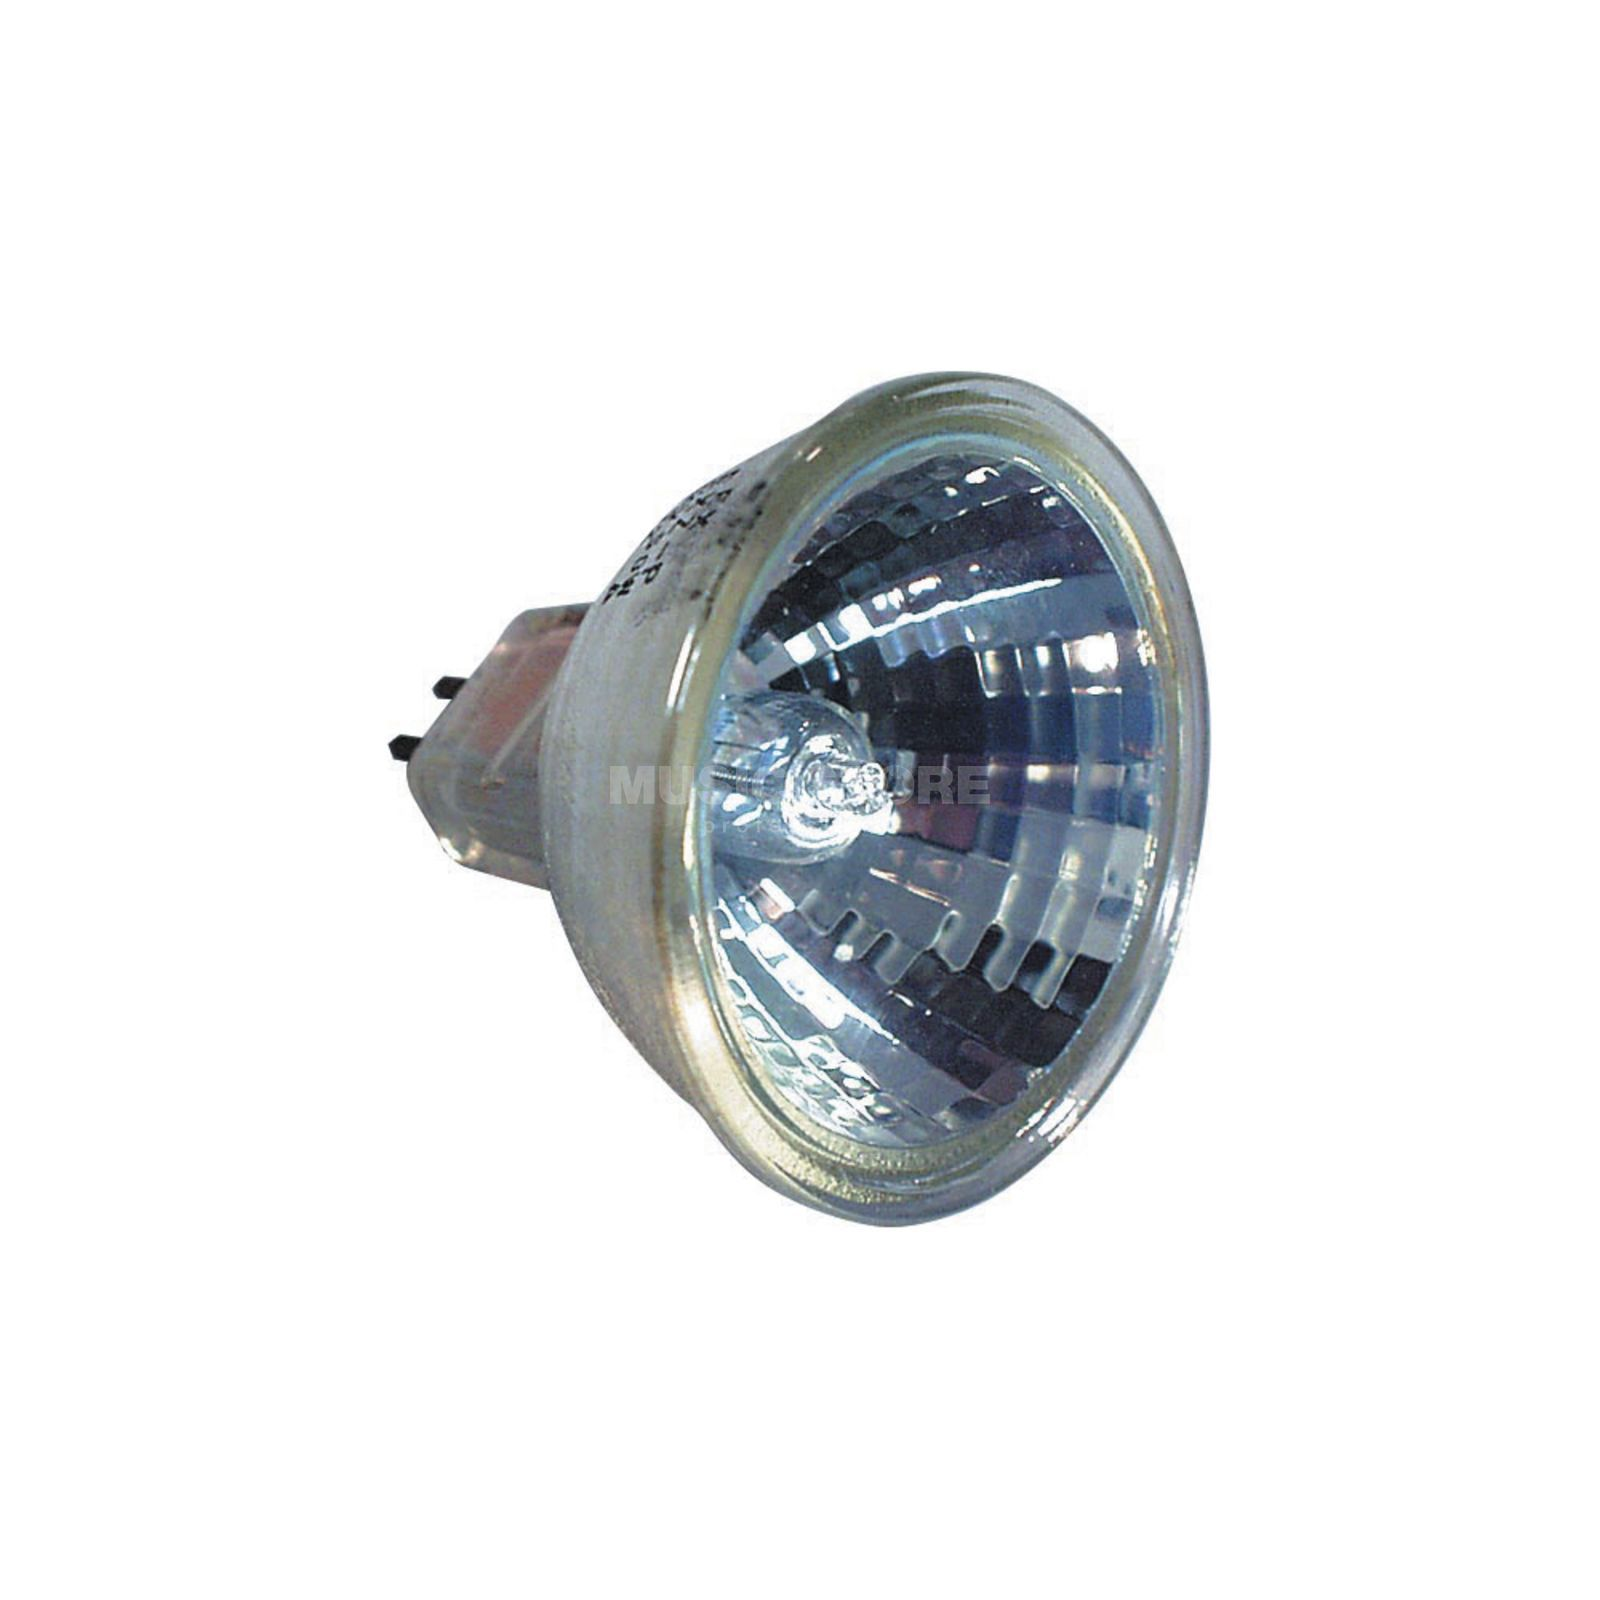 lightmaXX ENH 120V/250W Mirror / Reflector Lamp Product Image